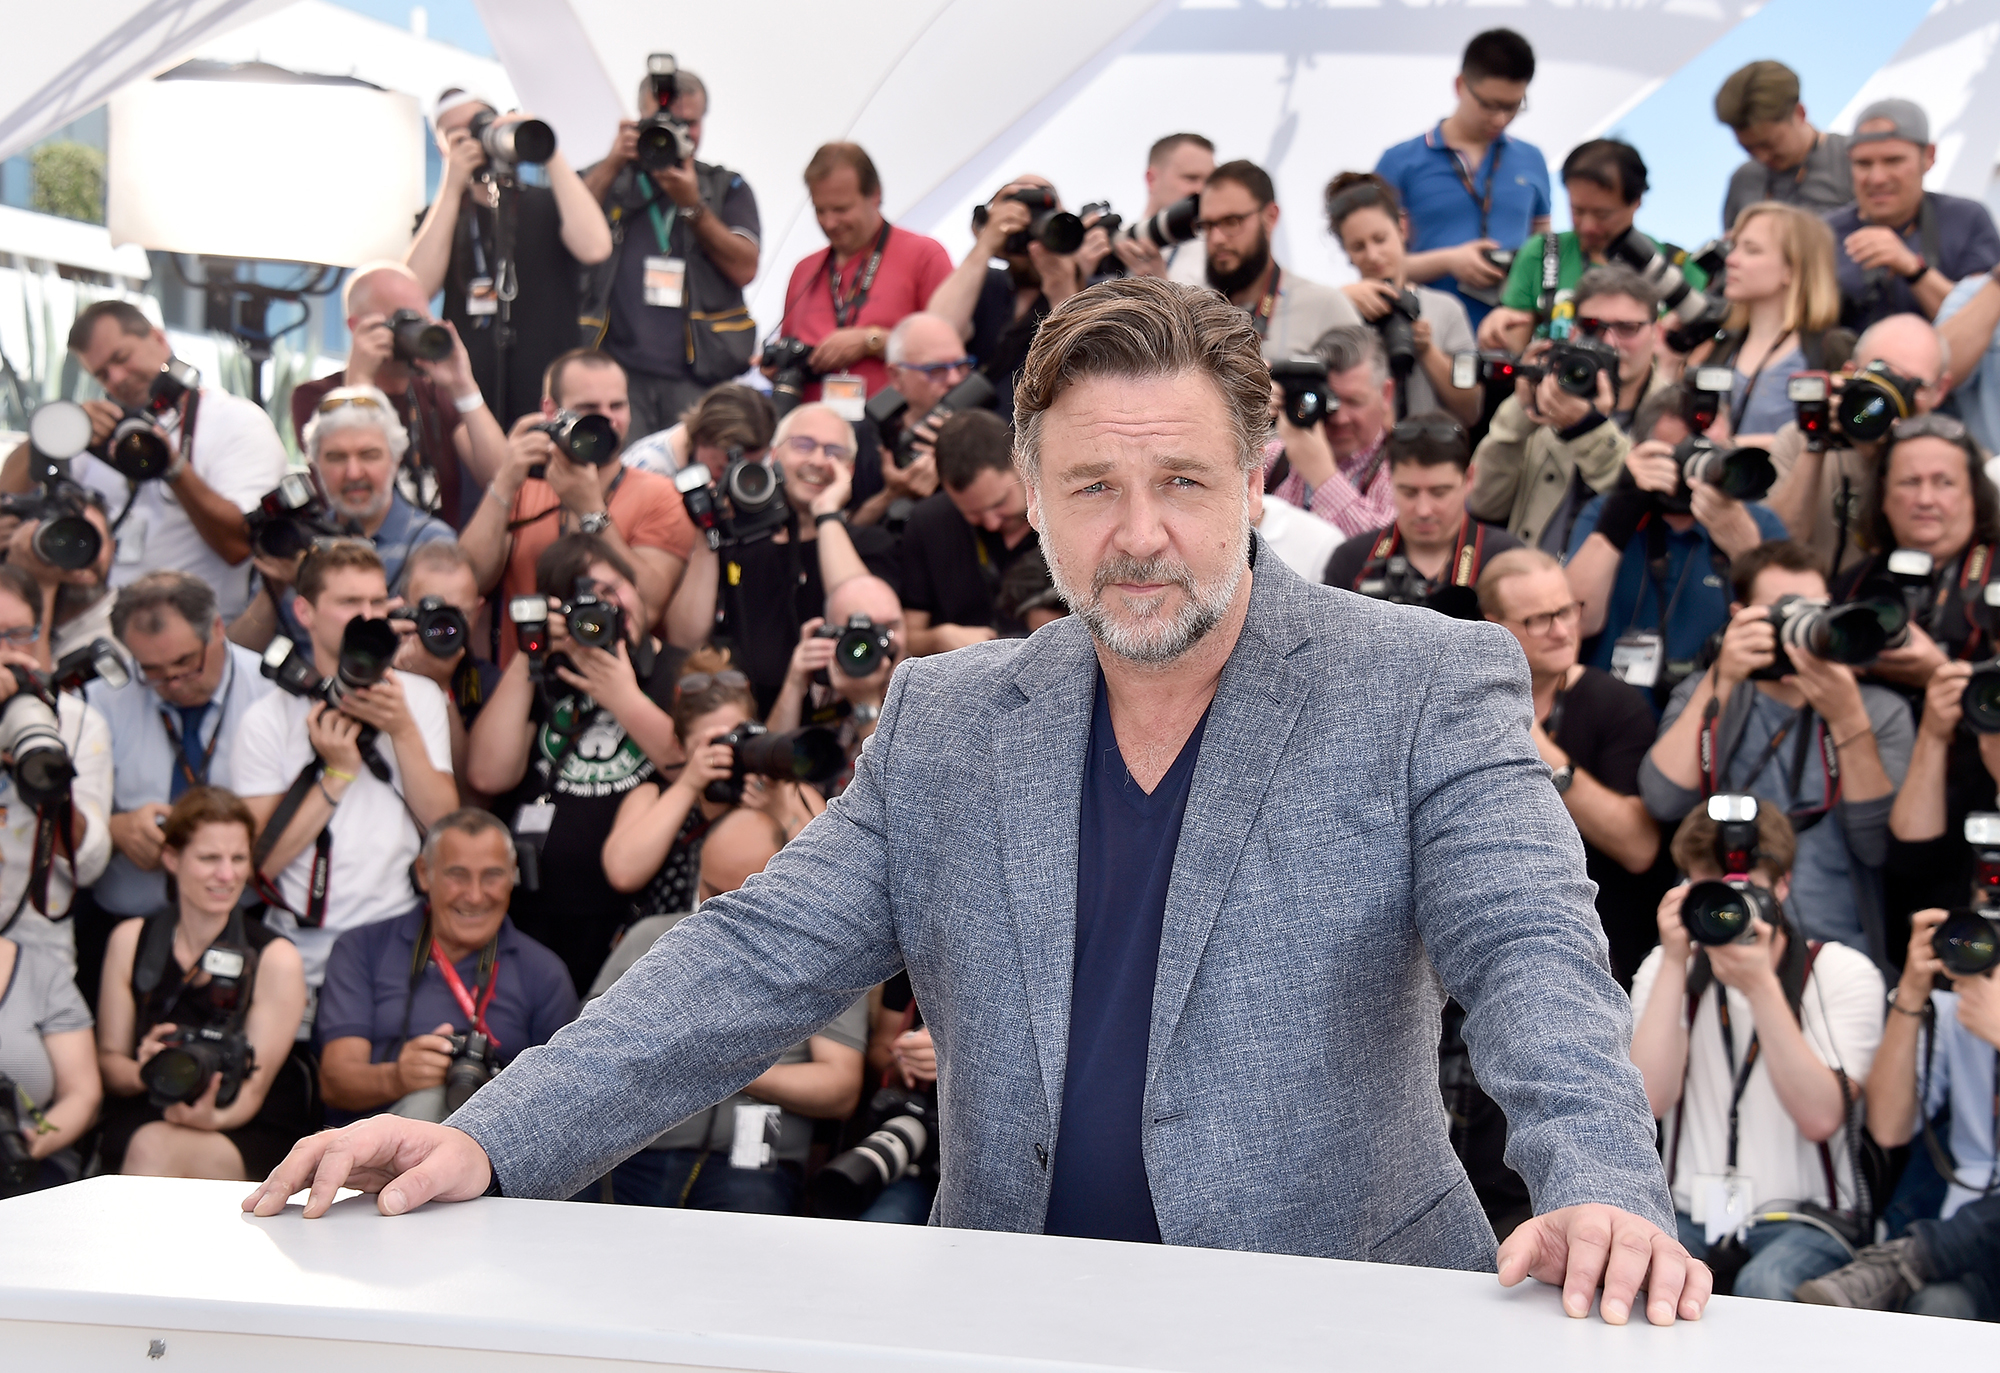 Russell-crowe 'divorce' auction sells millions worth of movie props